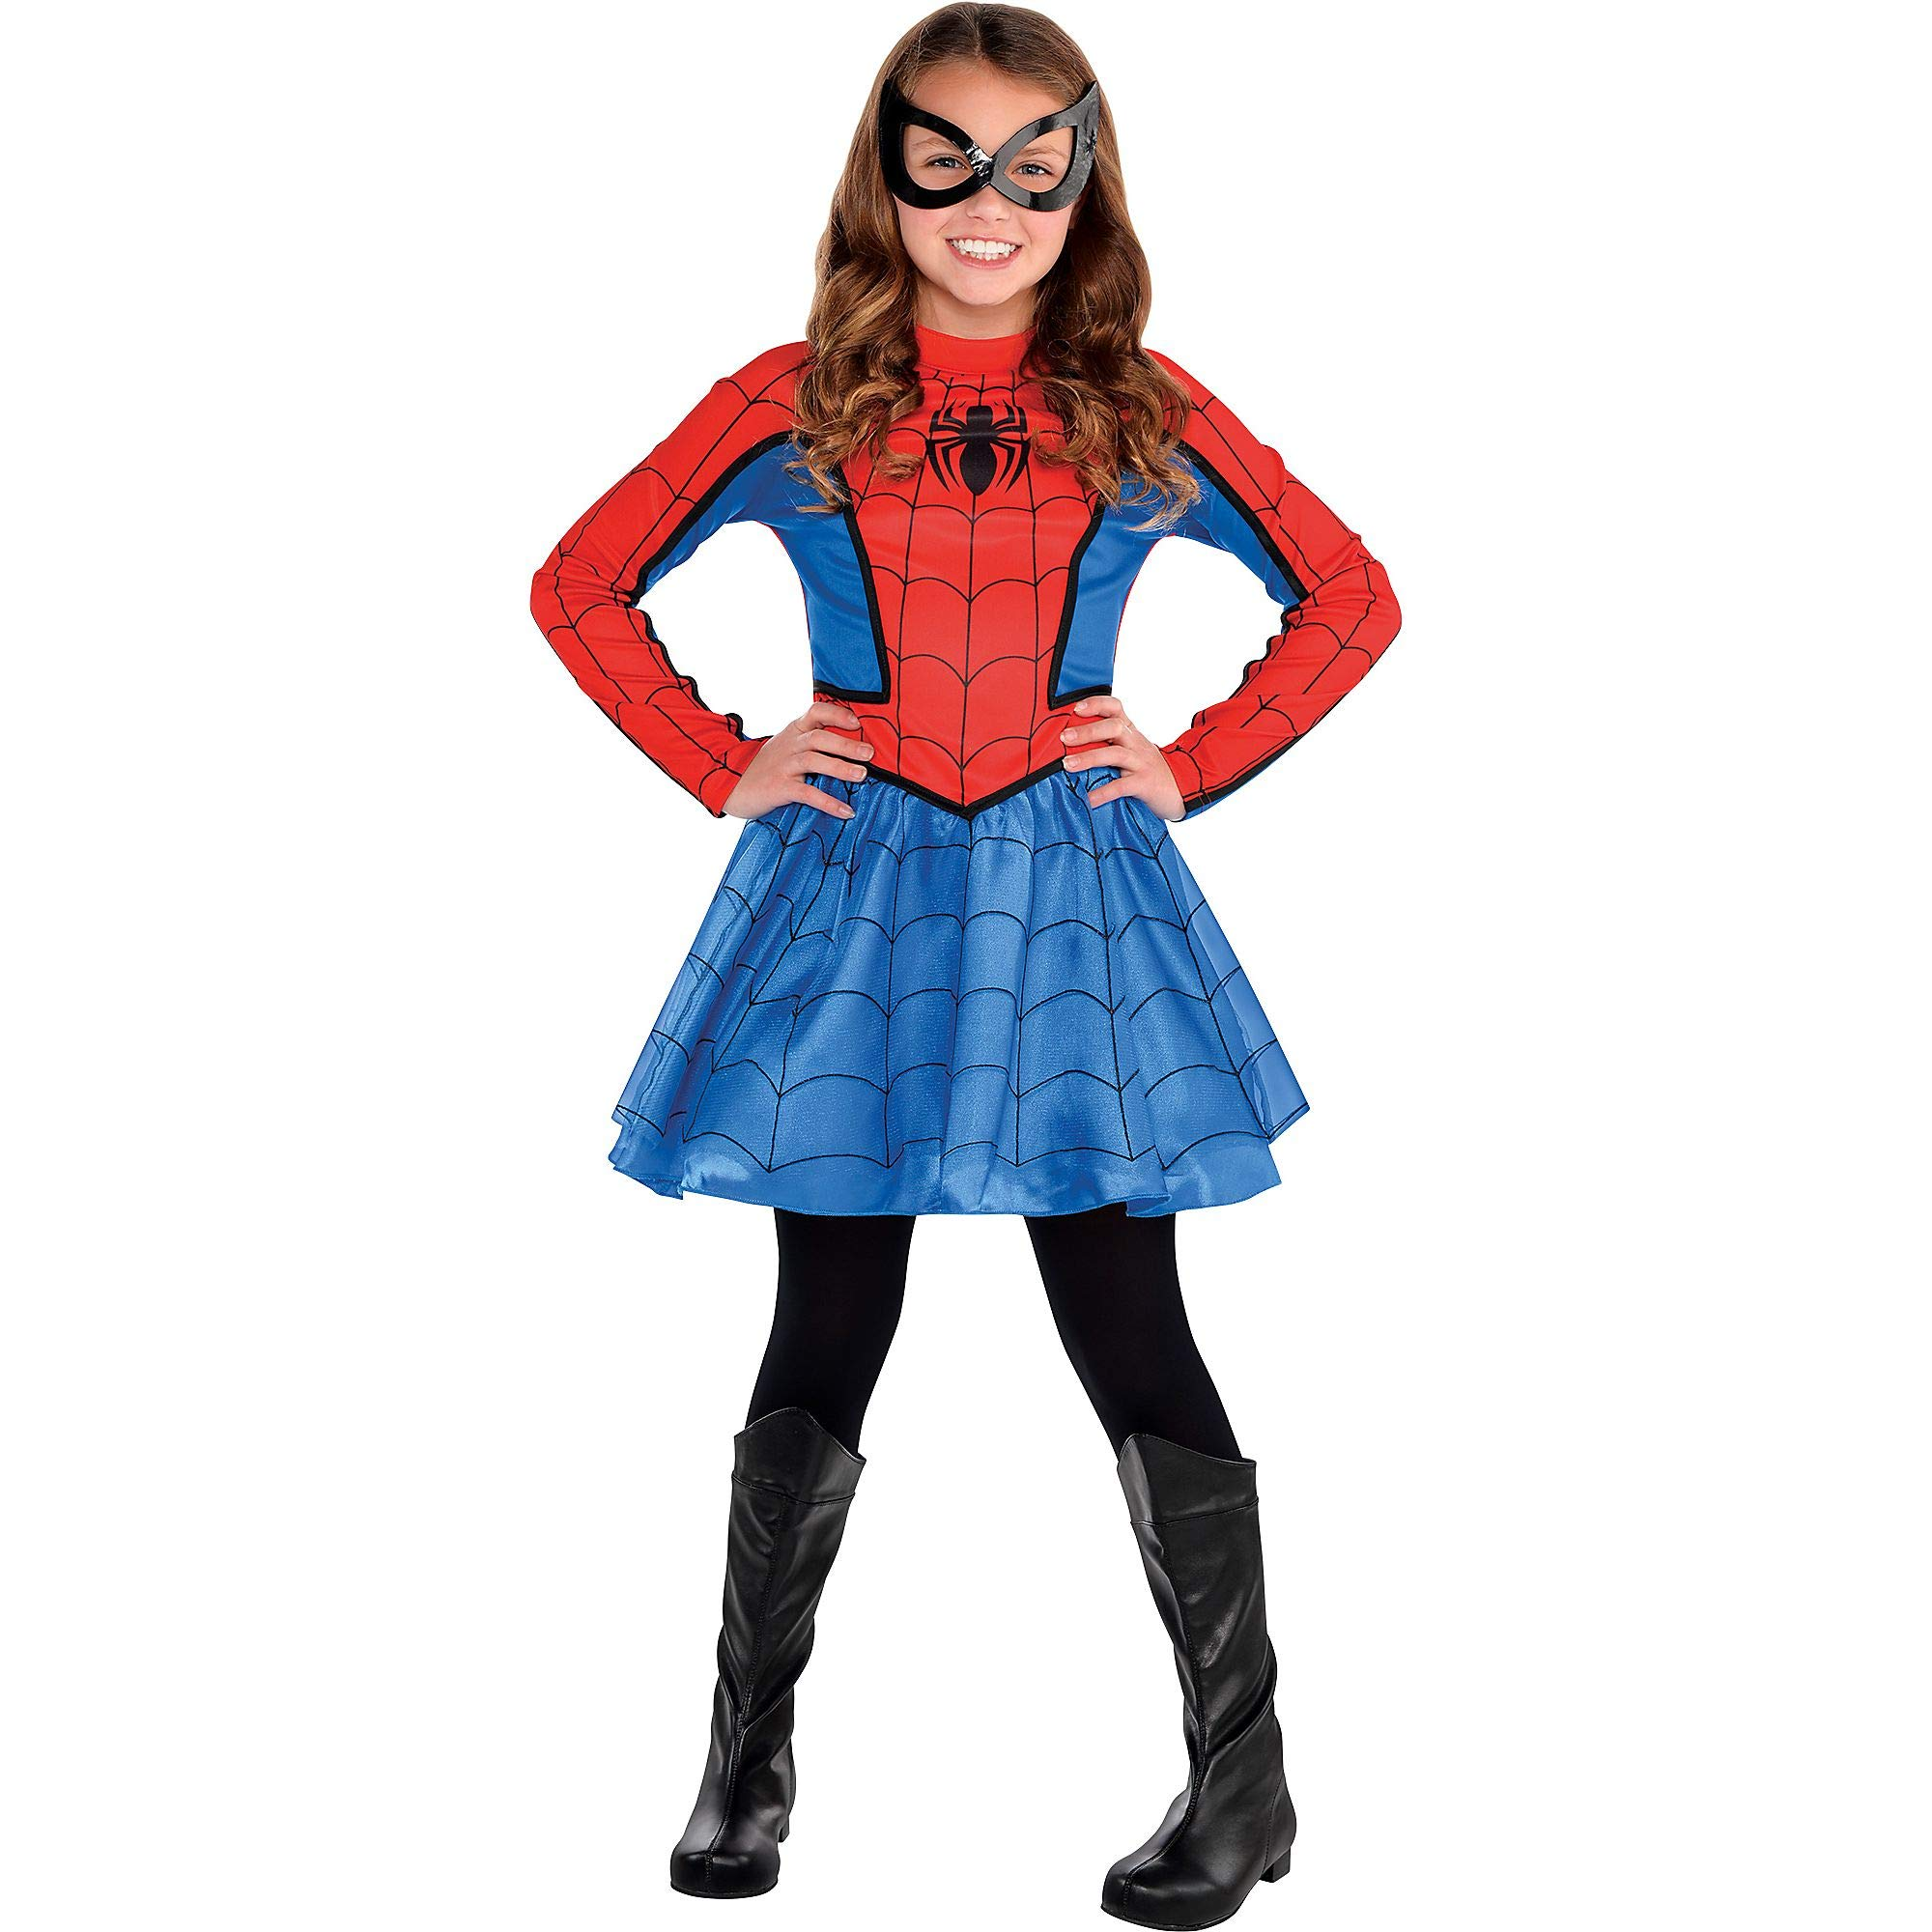 Costumes USA Red Spider-Girl Costume for Girls, Includes a Red and Blue Dress and a Matching Black Mask